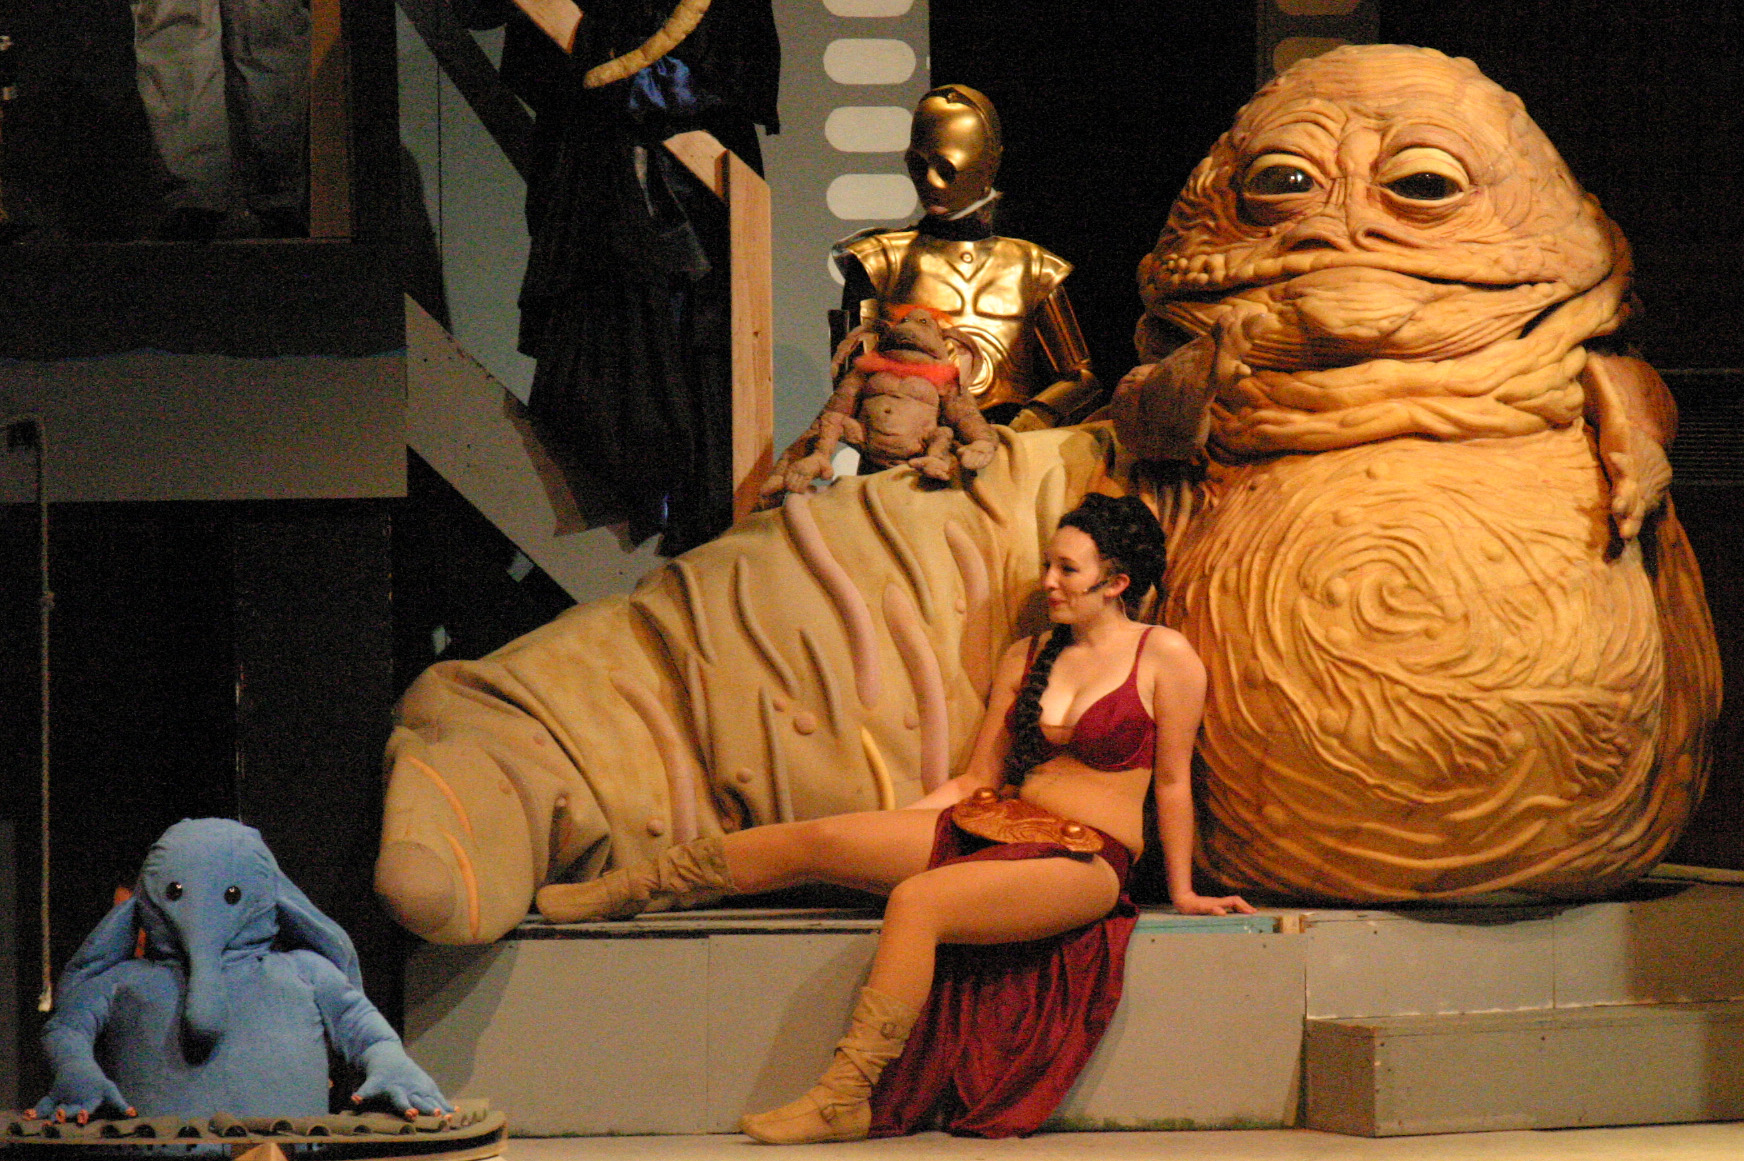 MTG - Star Wars Trilogy: Musical Edition (2005) - Photos Jabba The Hutt And Leia